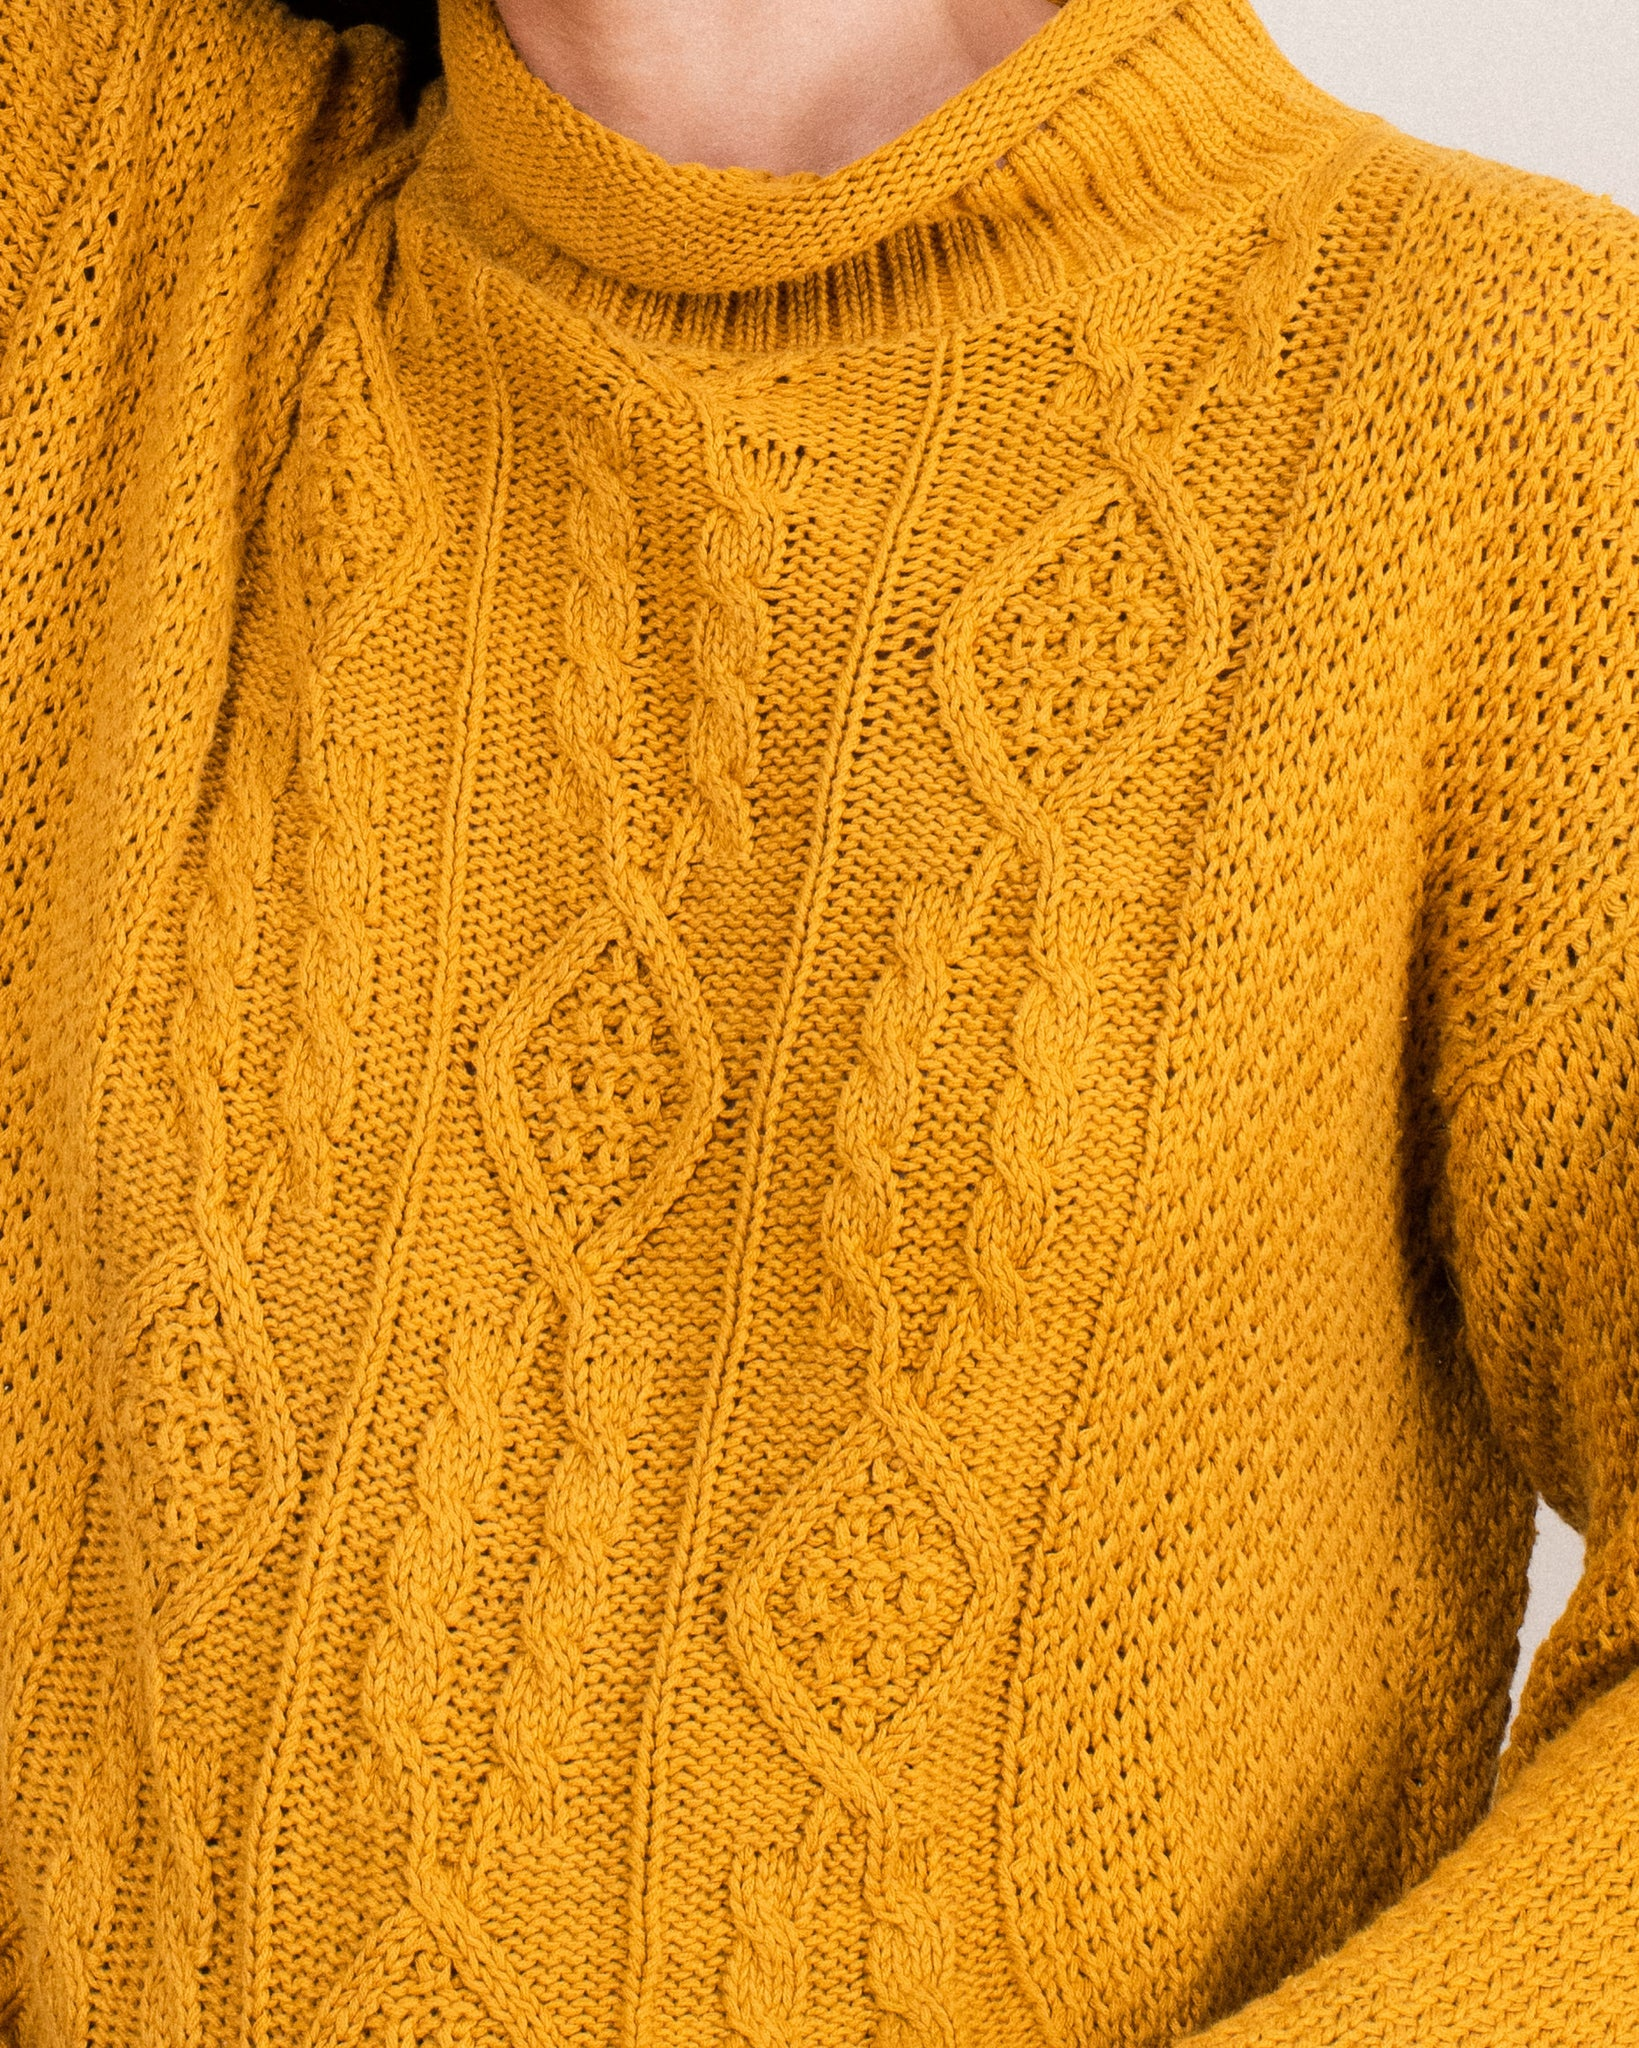 Vintage Chunky Ochre Cable Knit Sweater / S/M